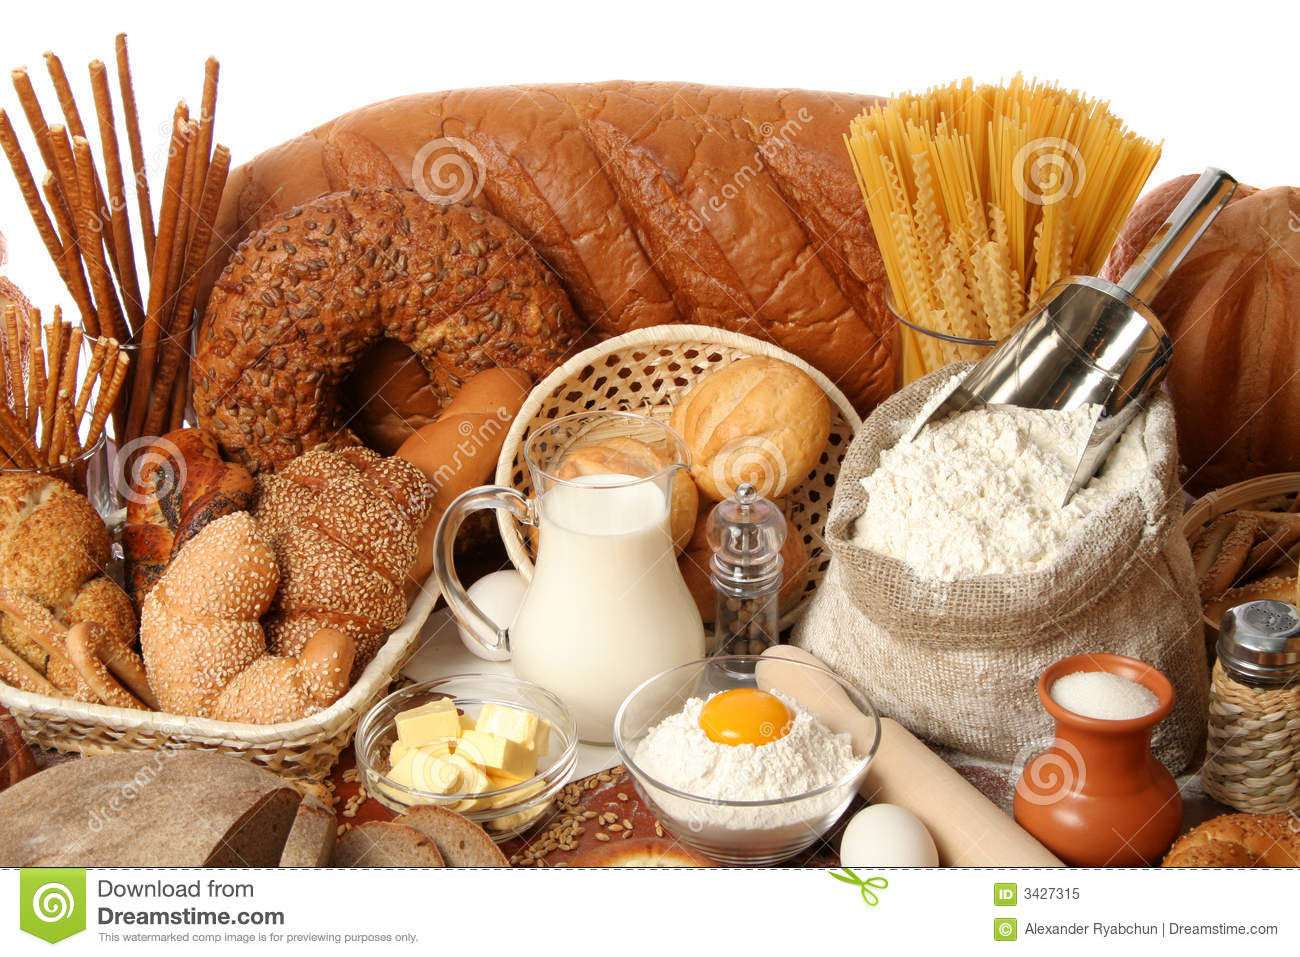 Assorted bread and ingredients